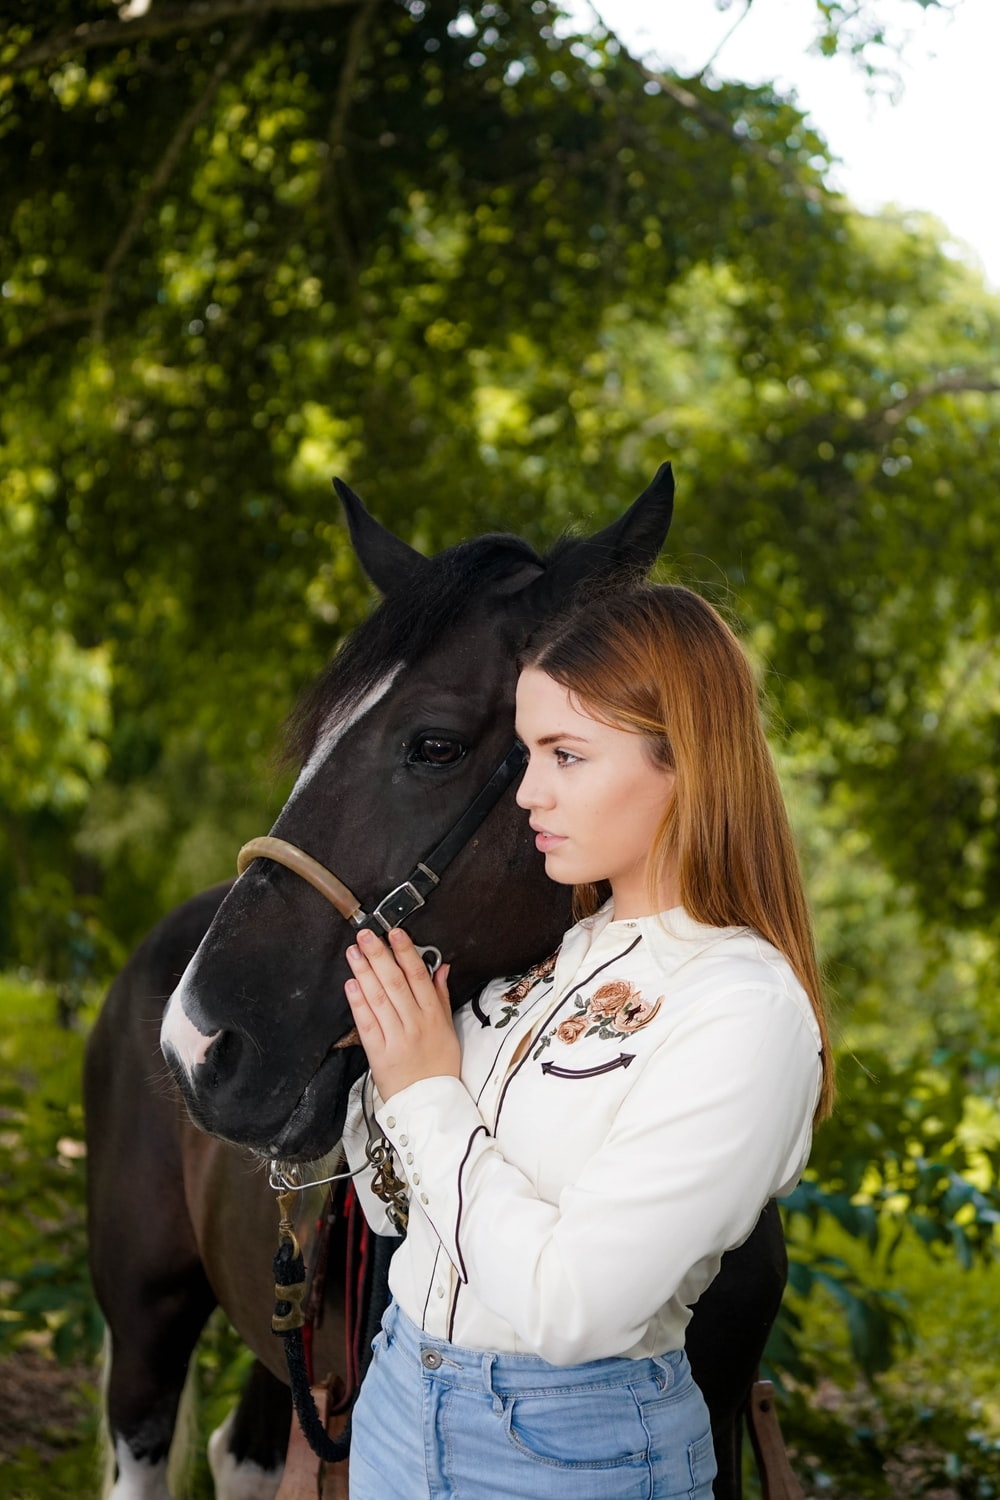 woman beside black horse during daytime